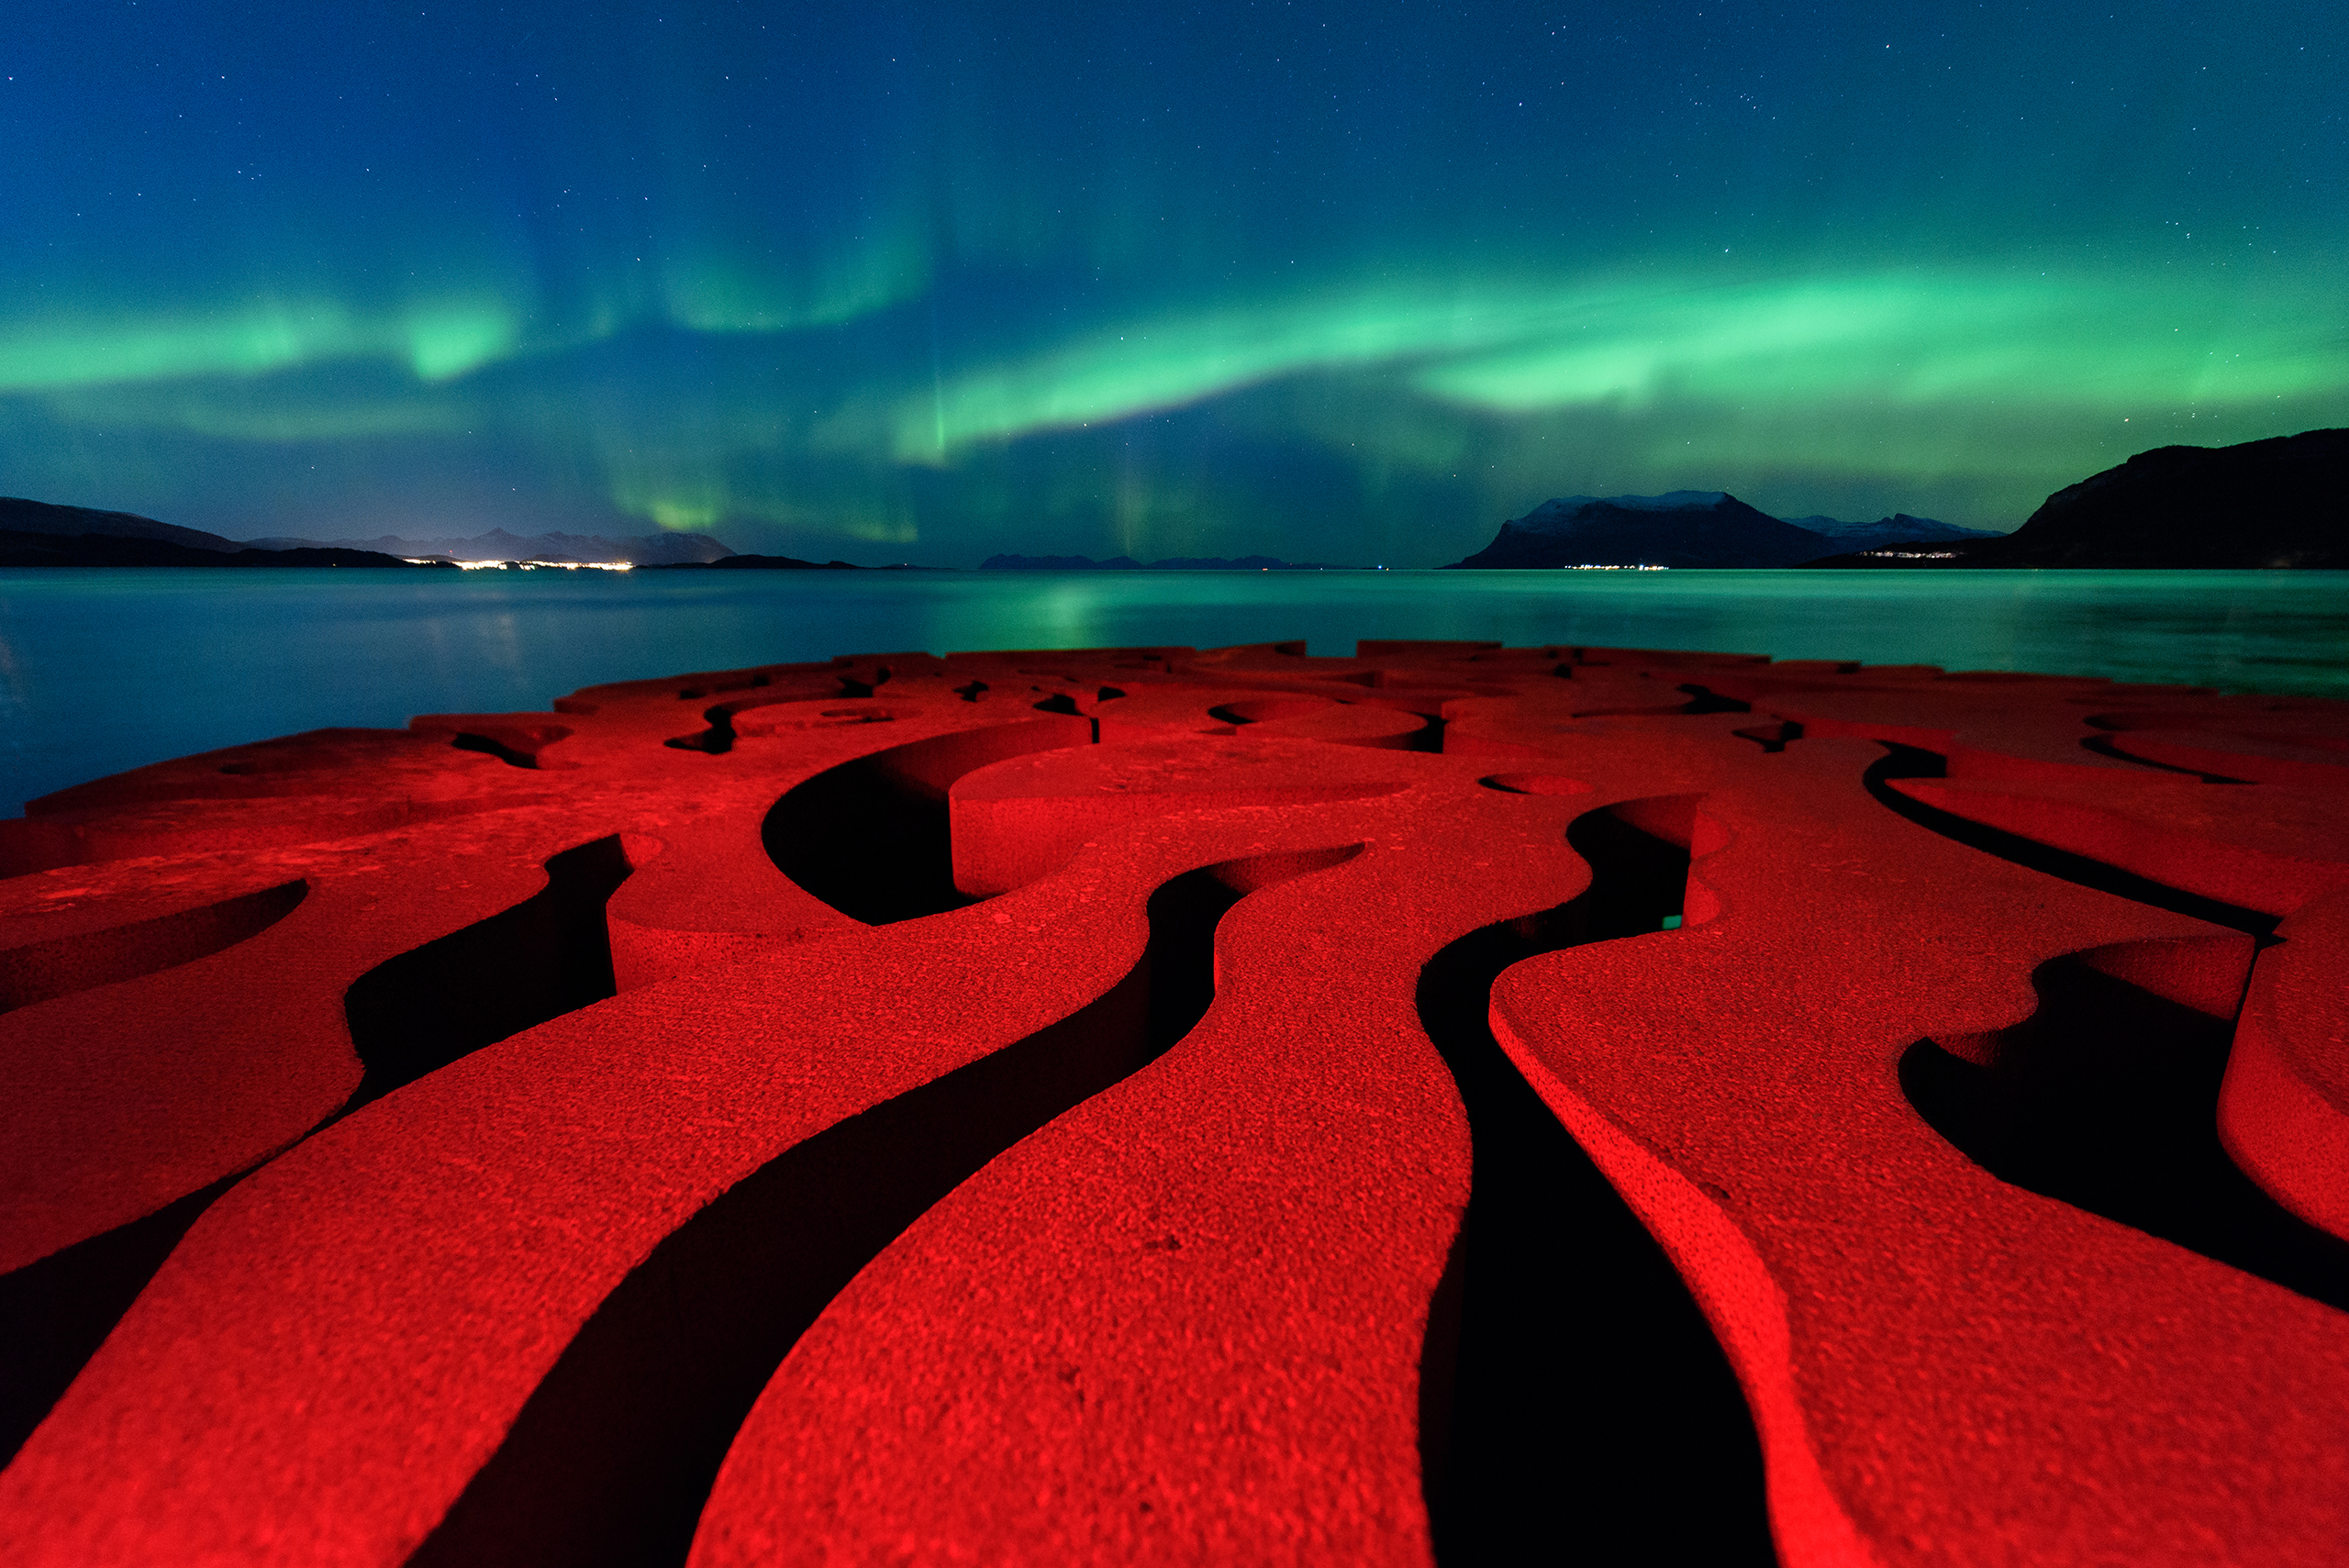 The rusty red swirls of the circular, iron sculpture, Seven Magic Points, in Brattebergan, Norway, mirror the rippling aurora above.